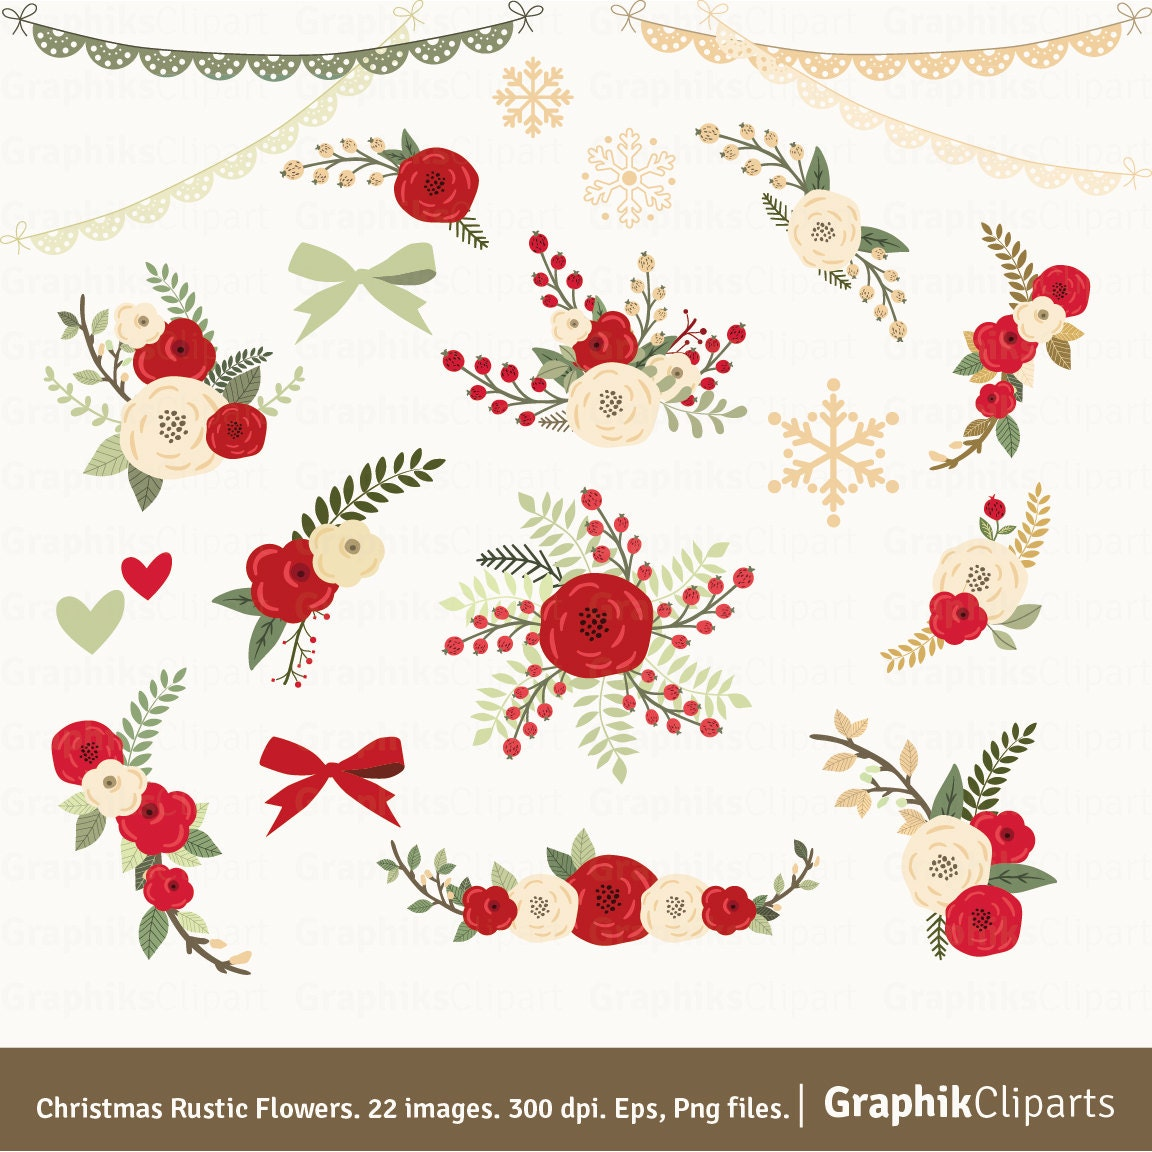 Christmas Rustic Flowers Clipart Floral Clipart Floral Etsy